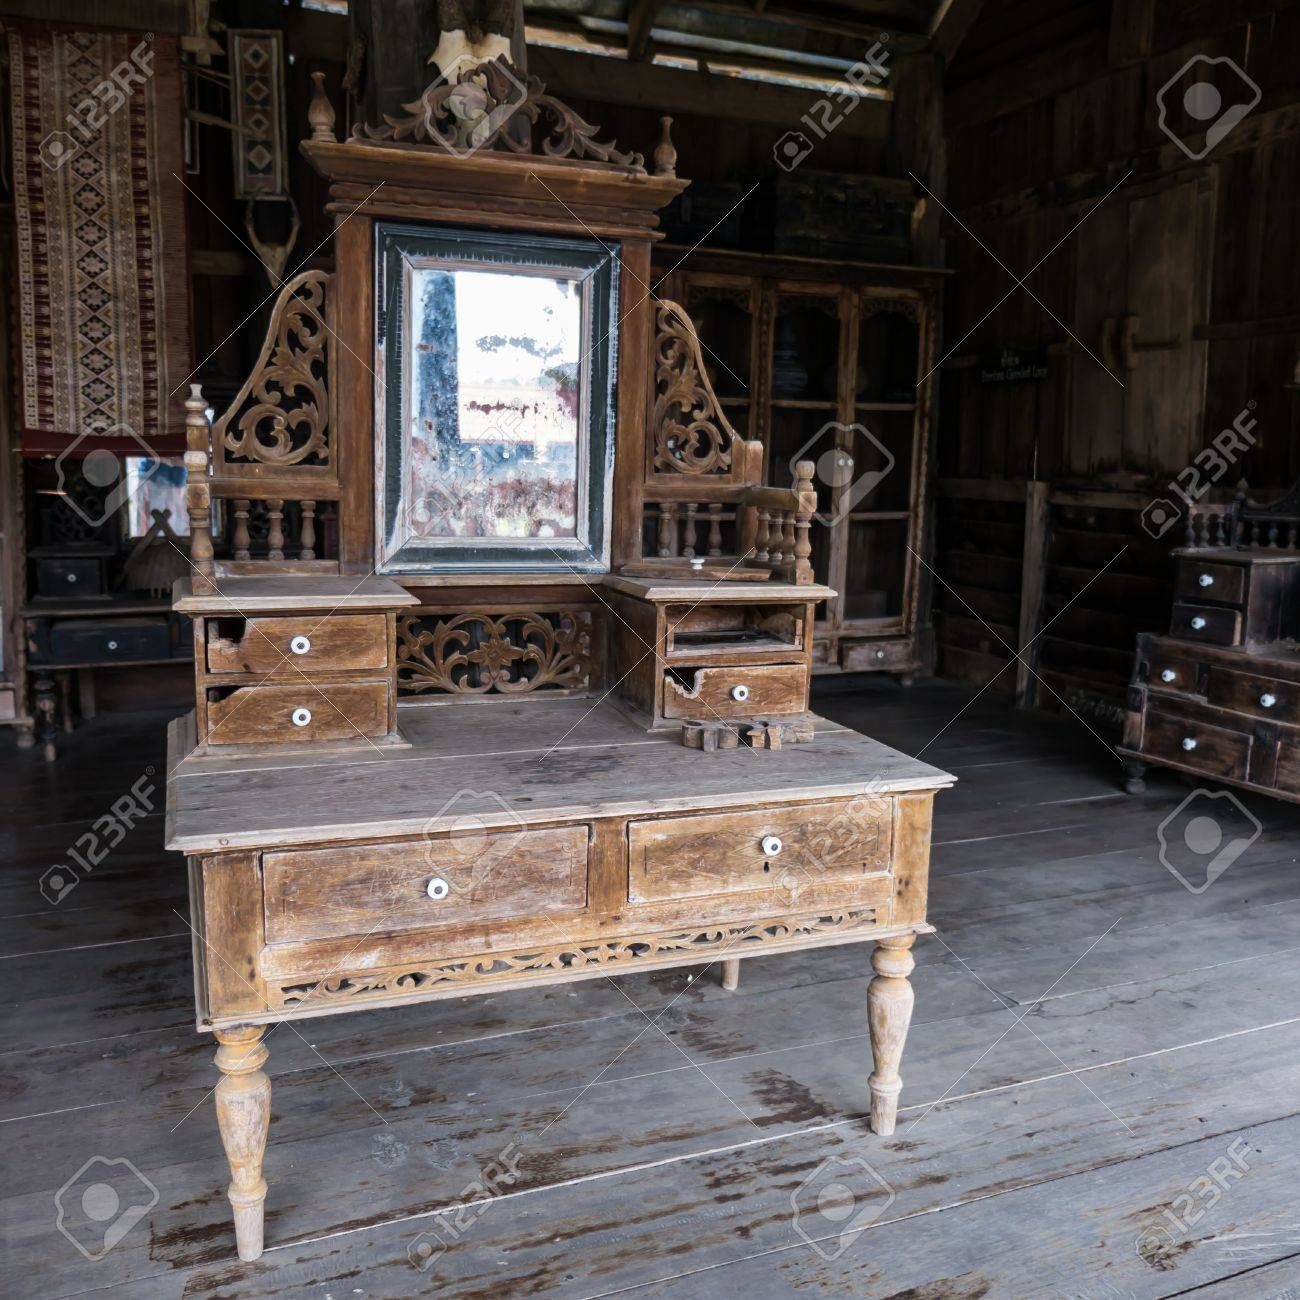 Vintage Dressing Table Old Fashioned Wooden Vanity In Old House Stock Photo Picture And Royalty Free Image Image 56031536